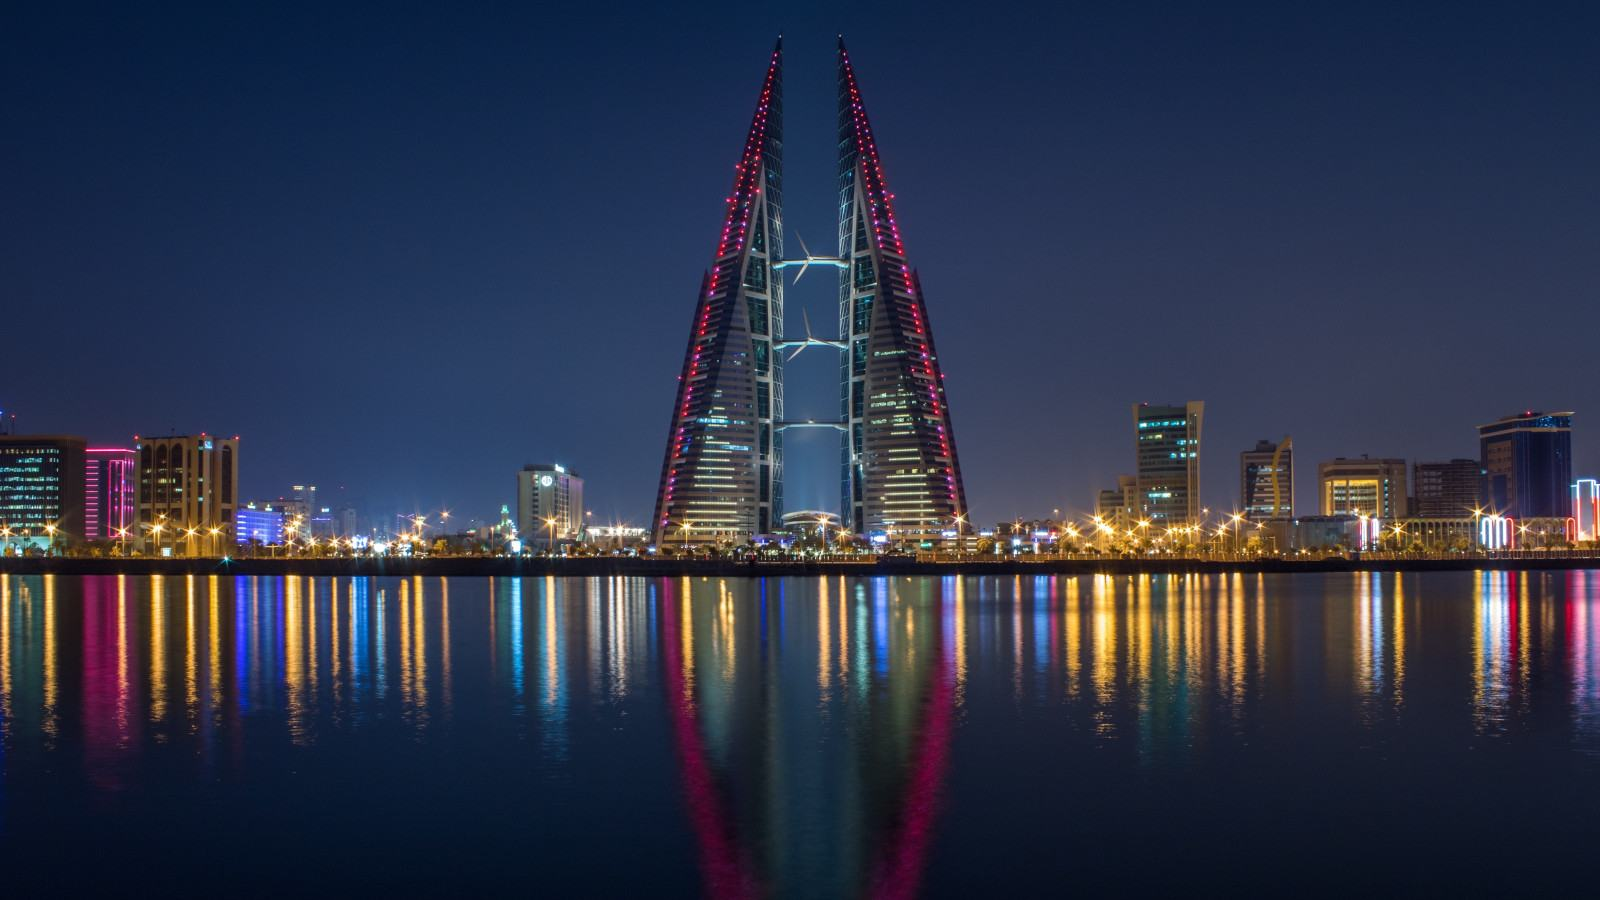 Bahrain by night, supposedly one of the most tolerant countries in the arab world